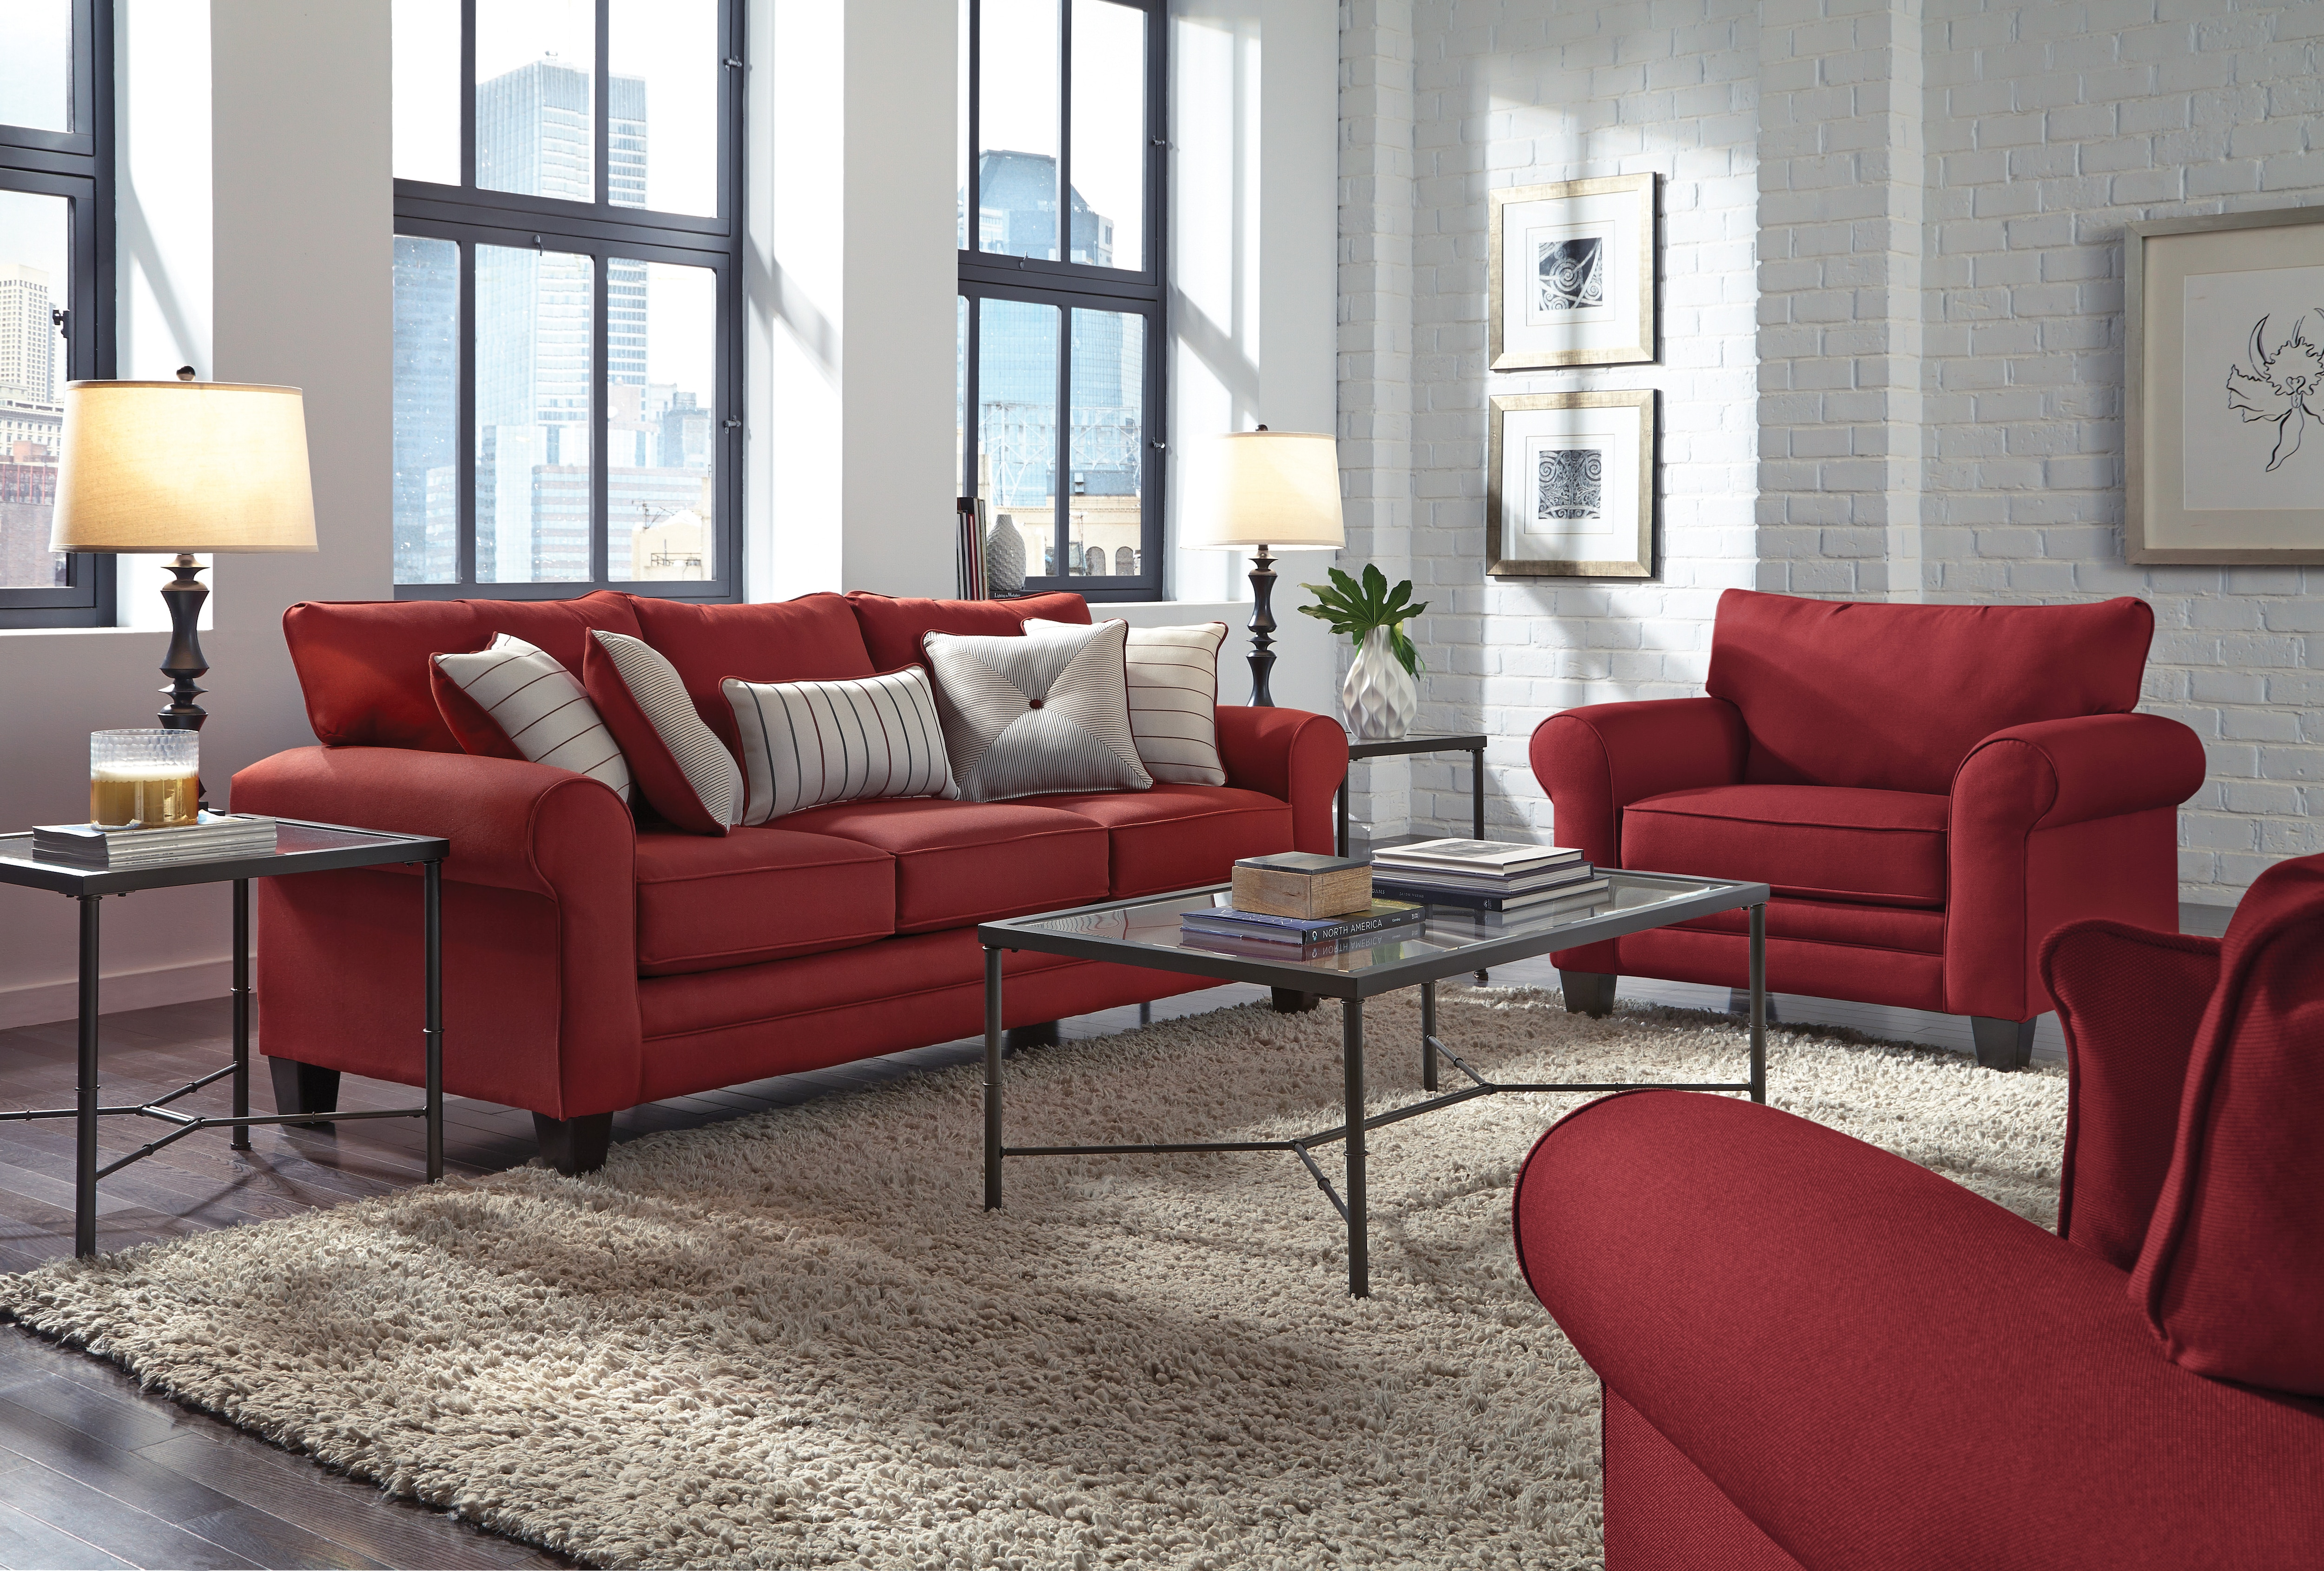 Living Room Furniture - Aspire Ottoman - Red